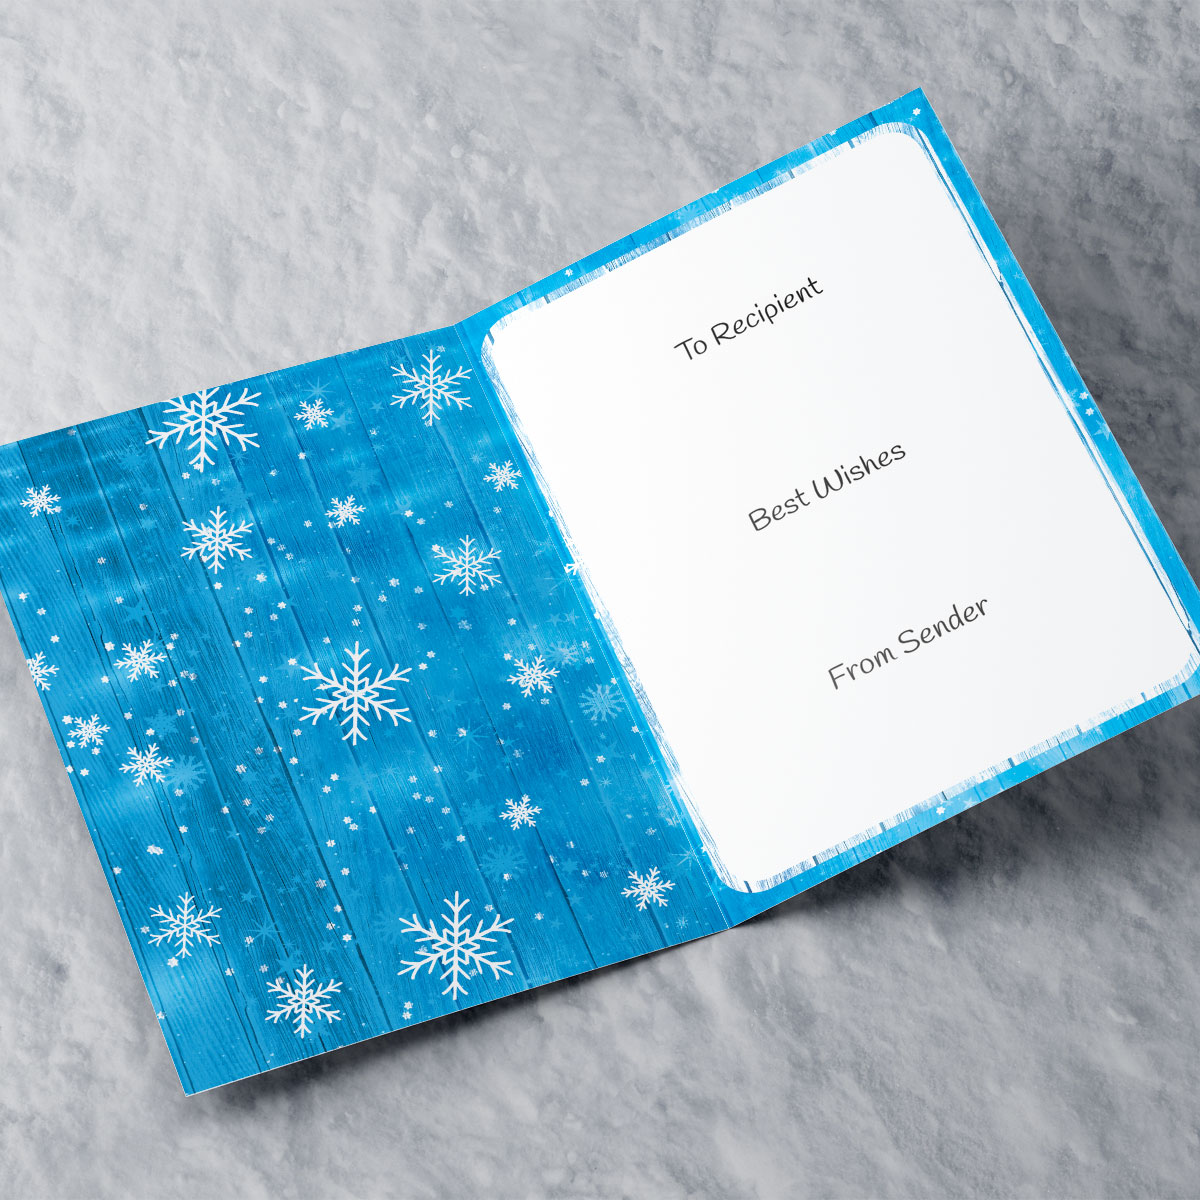 Photo Upload Christmas Card - Blue Wood With Snowflakes